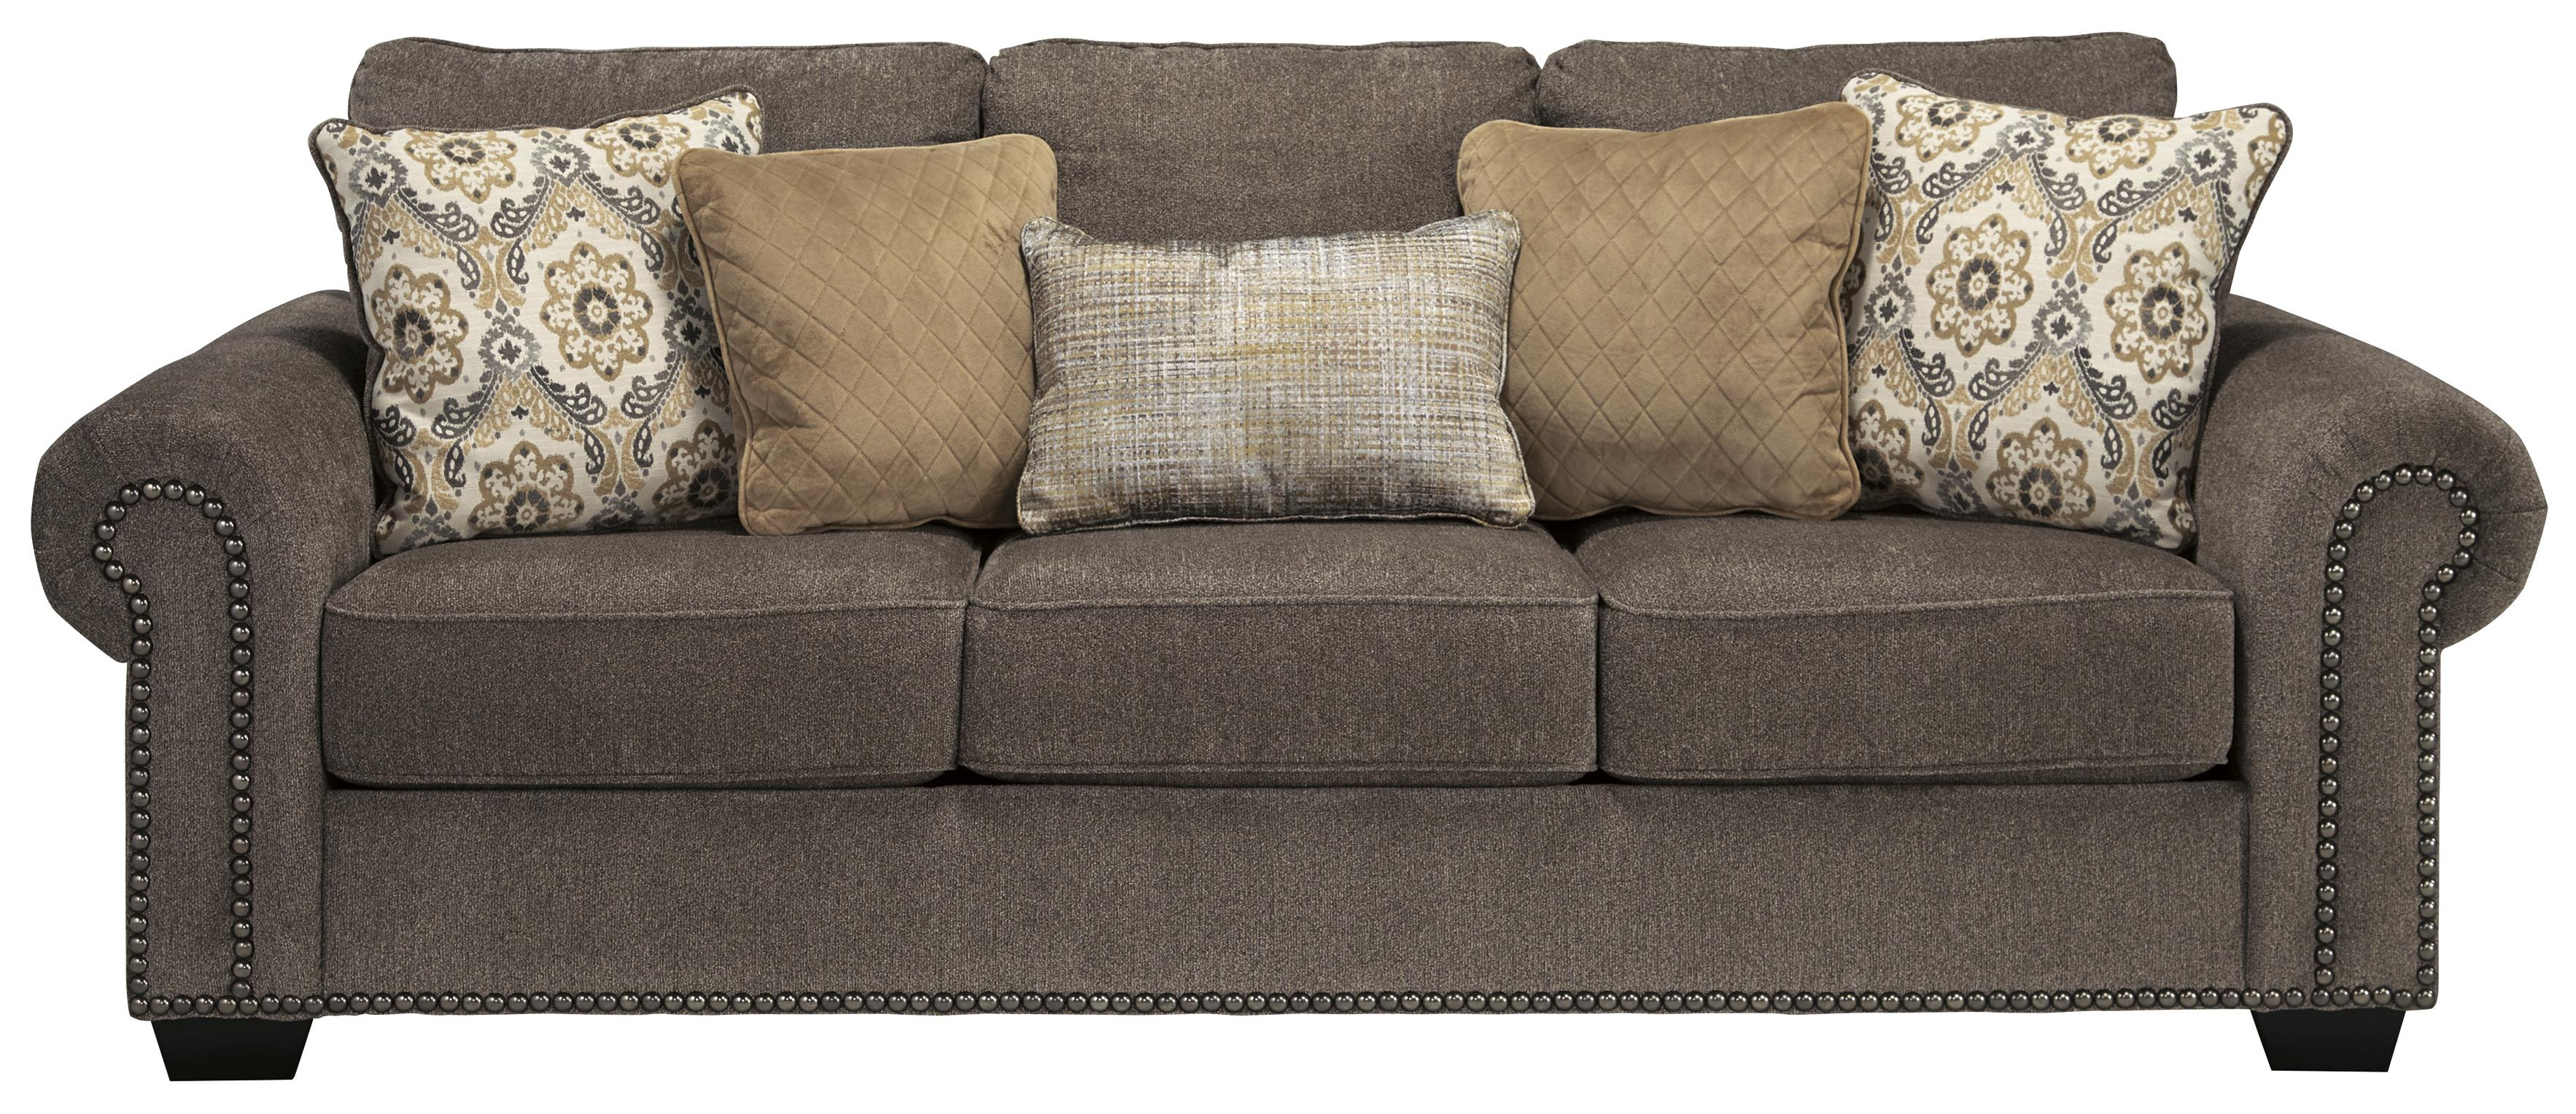 Benchcraft Emelen Queen Sofa Sleeper - Item Number: 4560039